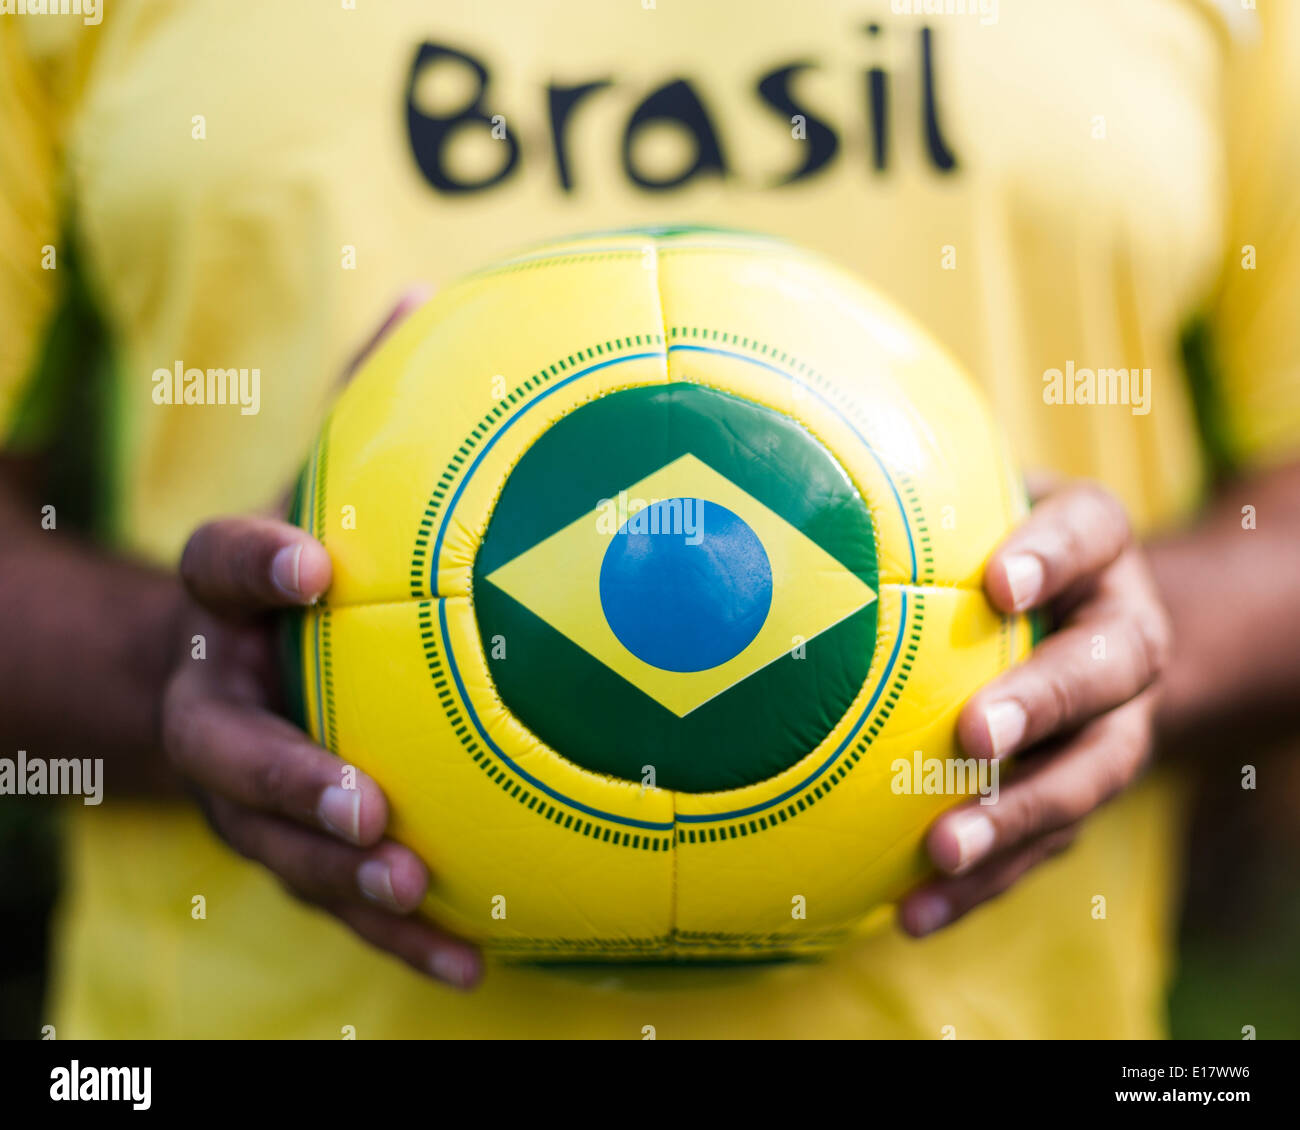 Man holding football with Brazilian flag for Brazil World Cup 2014. Stock Photo